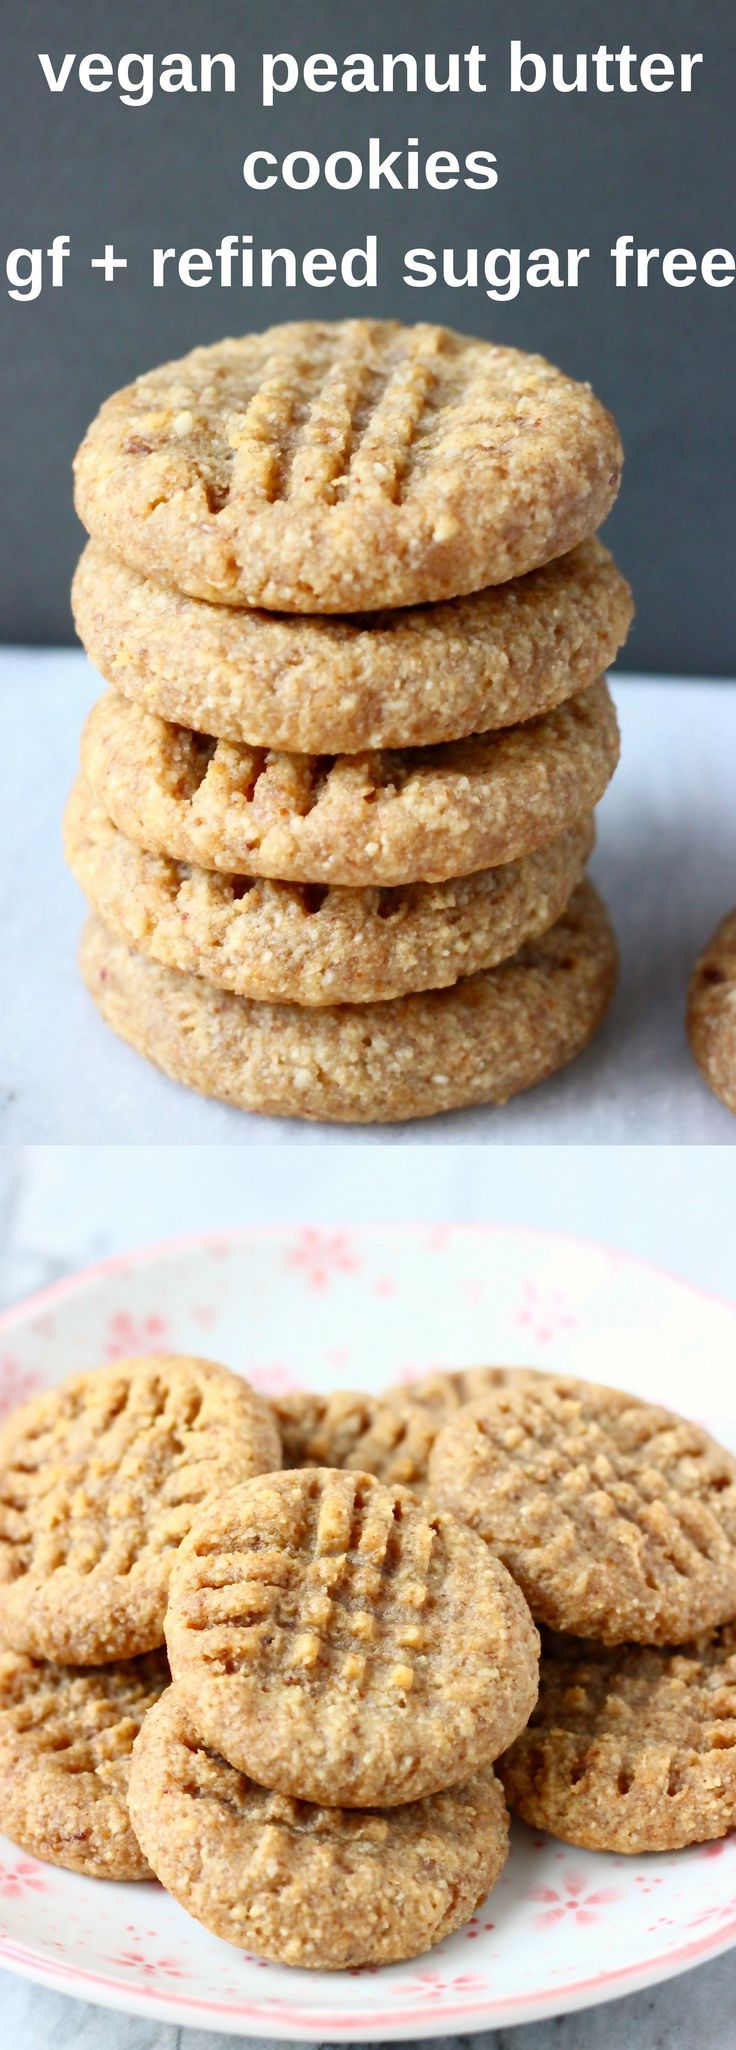 These Gluten-Free Vegan Peanut Butter Cookies are soft and chewy, perfectly salty-sweet and naturally sweetened! Egg-free, grain-free and refined sugar free. #vegan #glutenfree #peanutbutter #cookies #plantbased #dairyfree #dessert